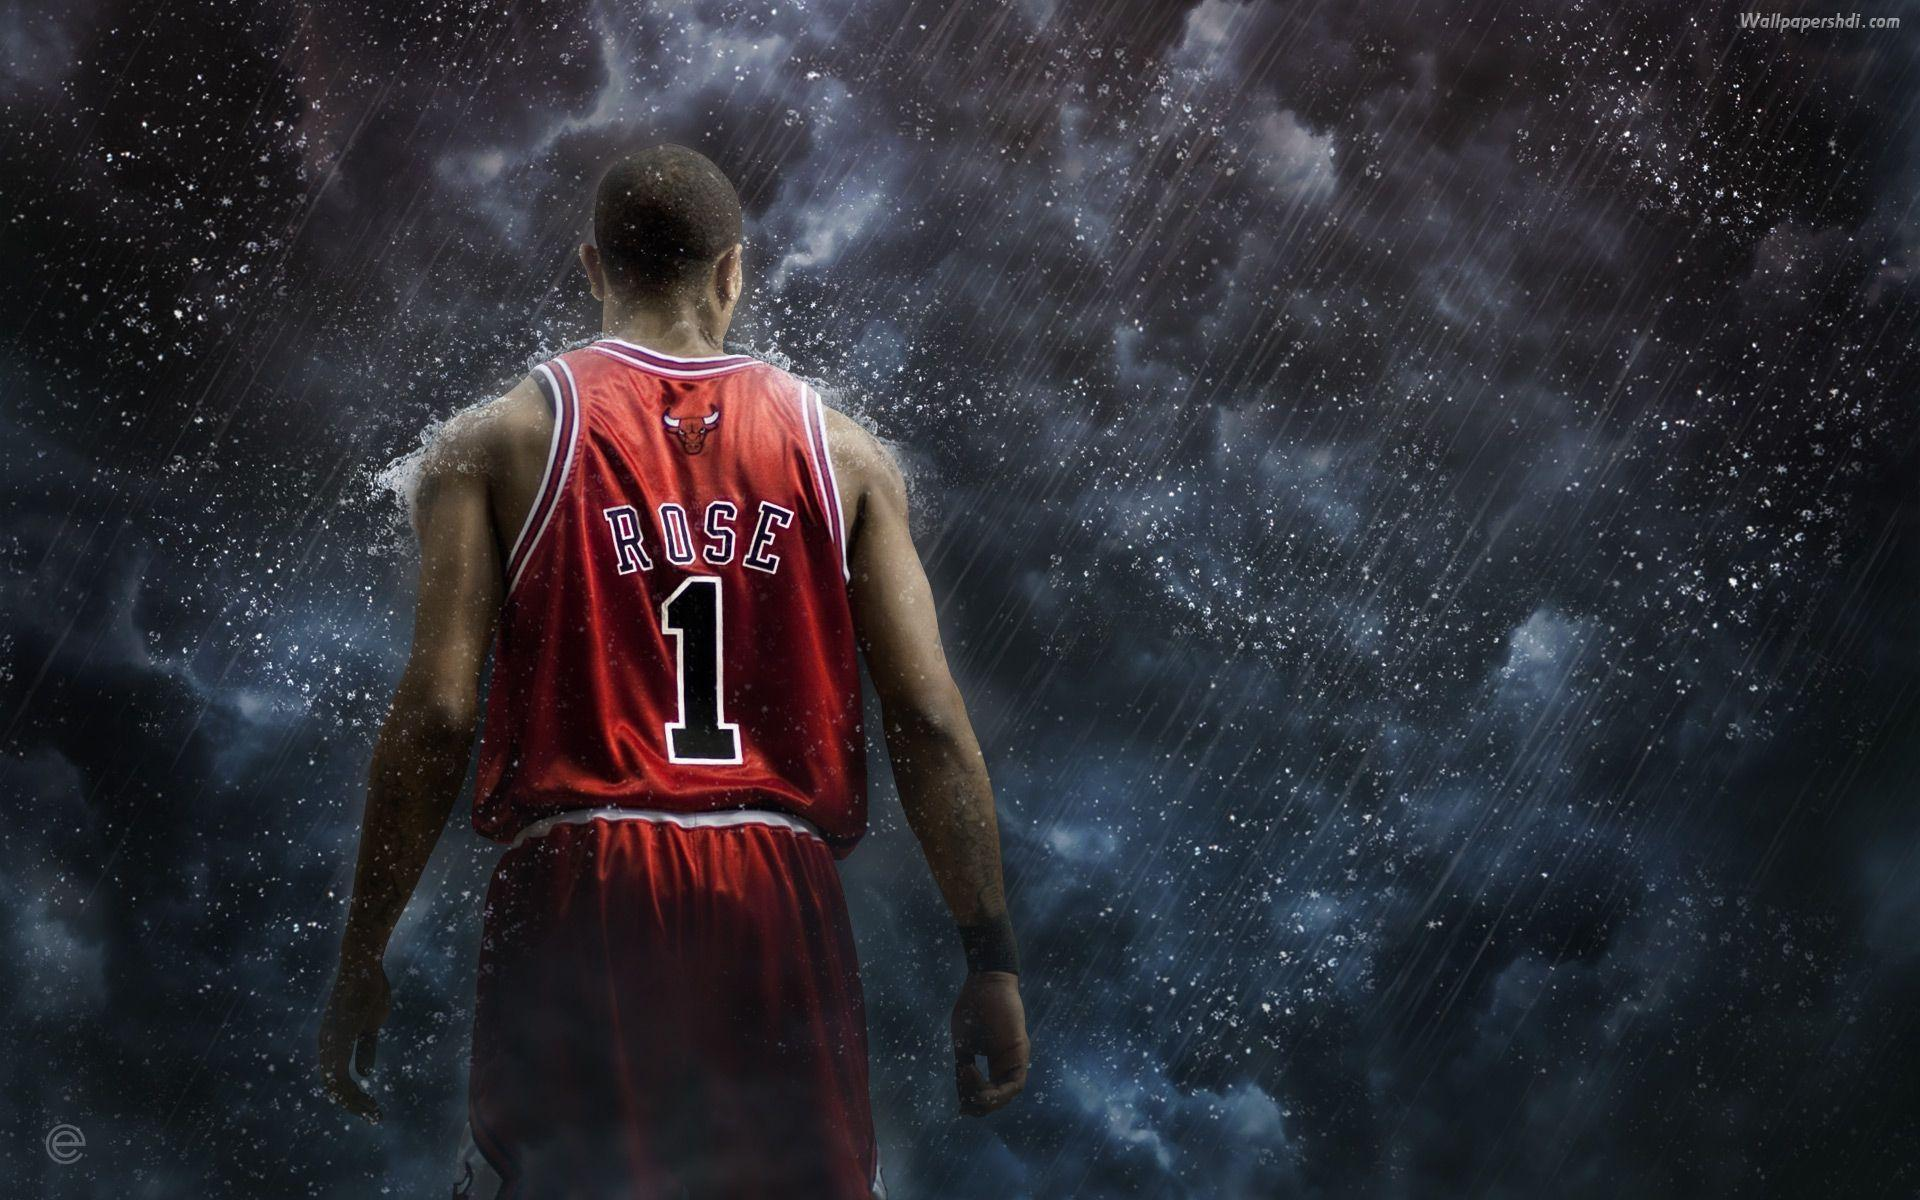 Derrick rose wallpapers 2015 hd wallpaper cave for D wall wallpaper